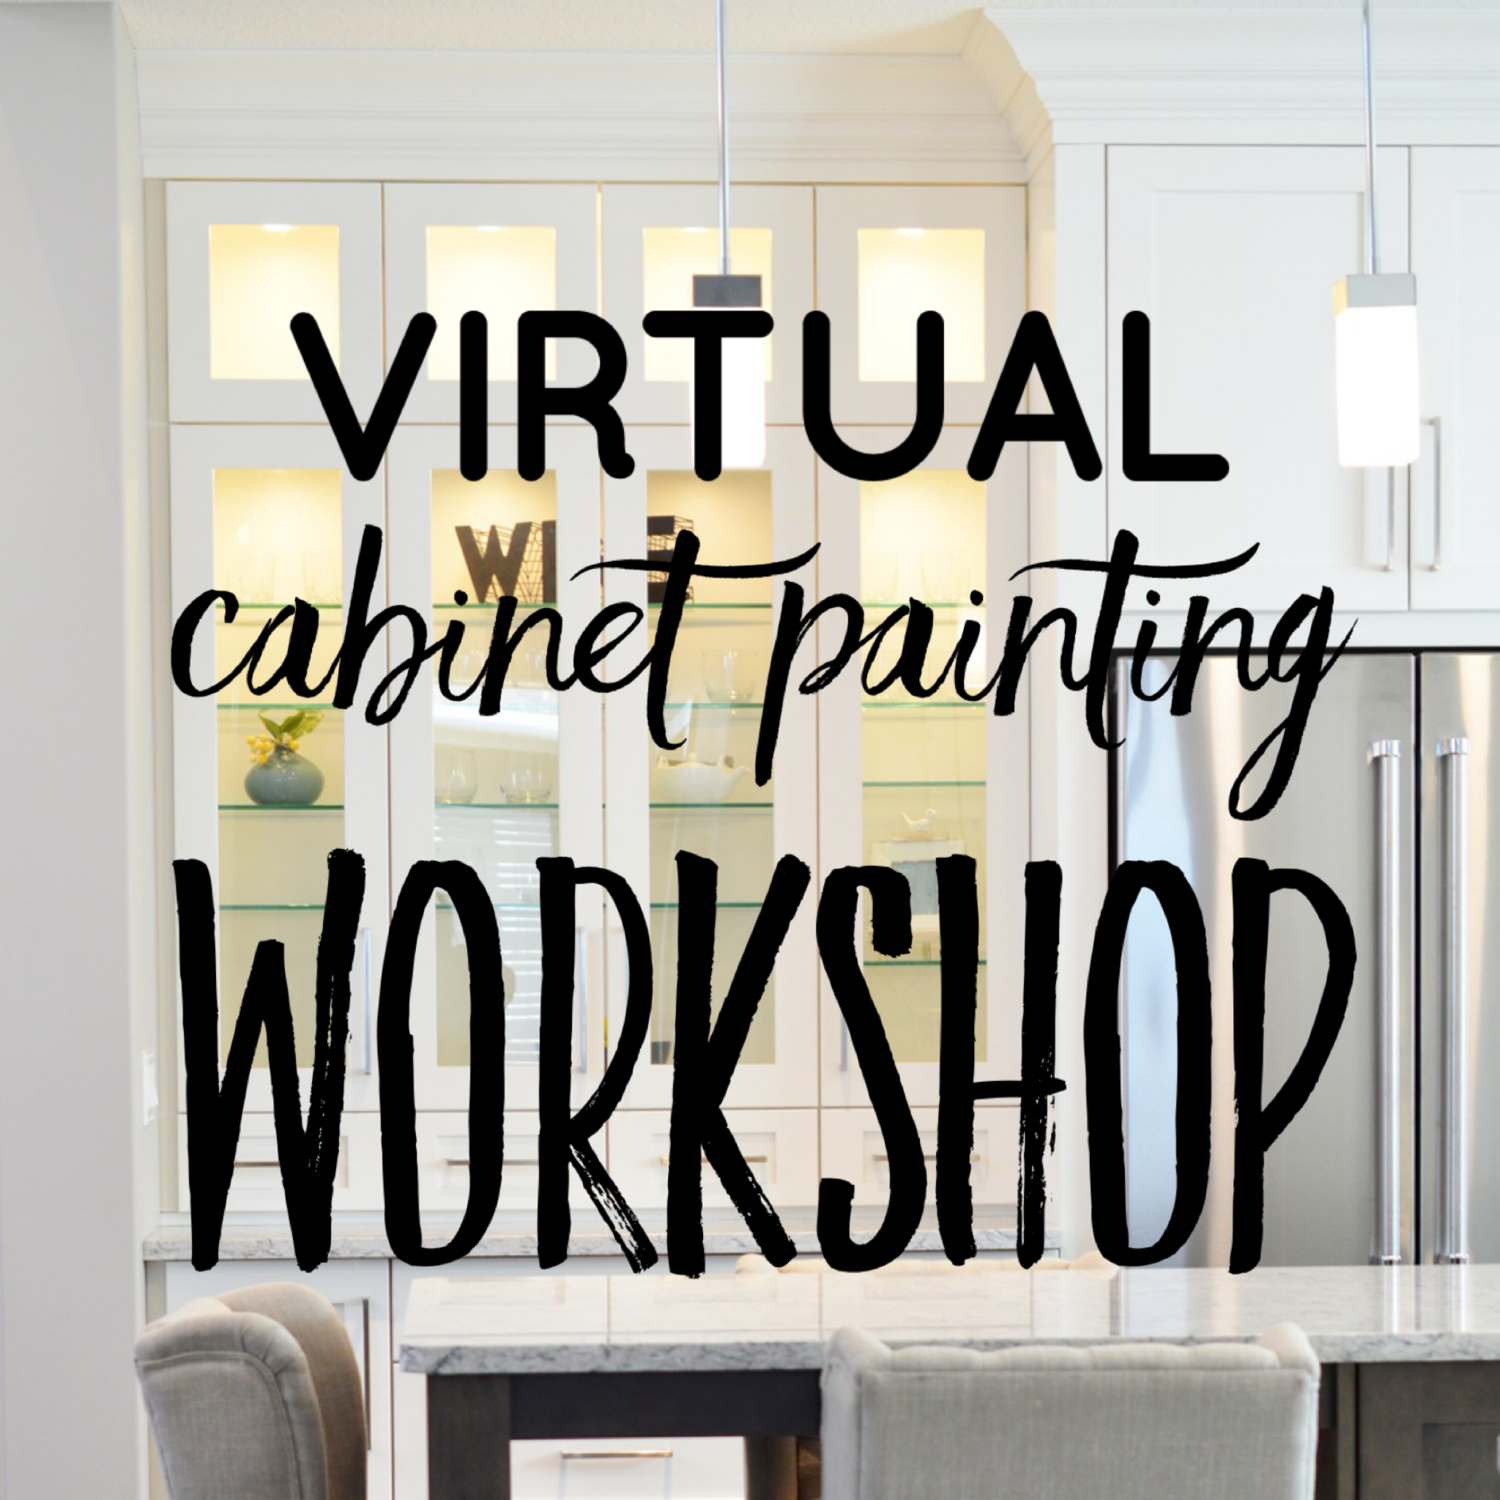 Virtual Cabinet Painting Workshop